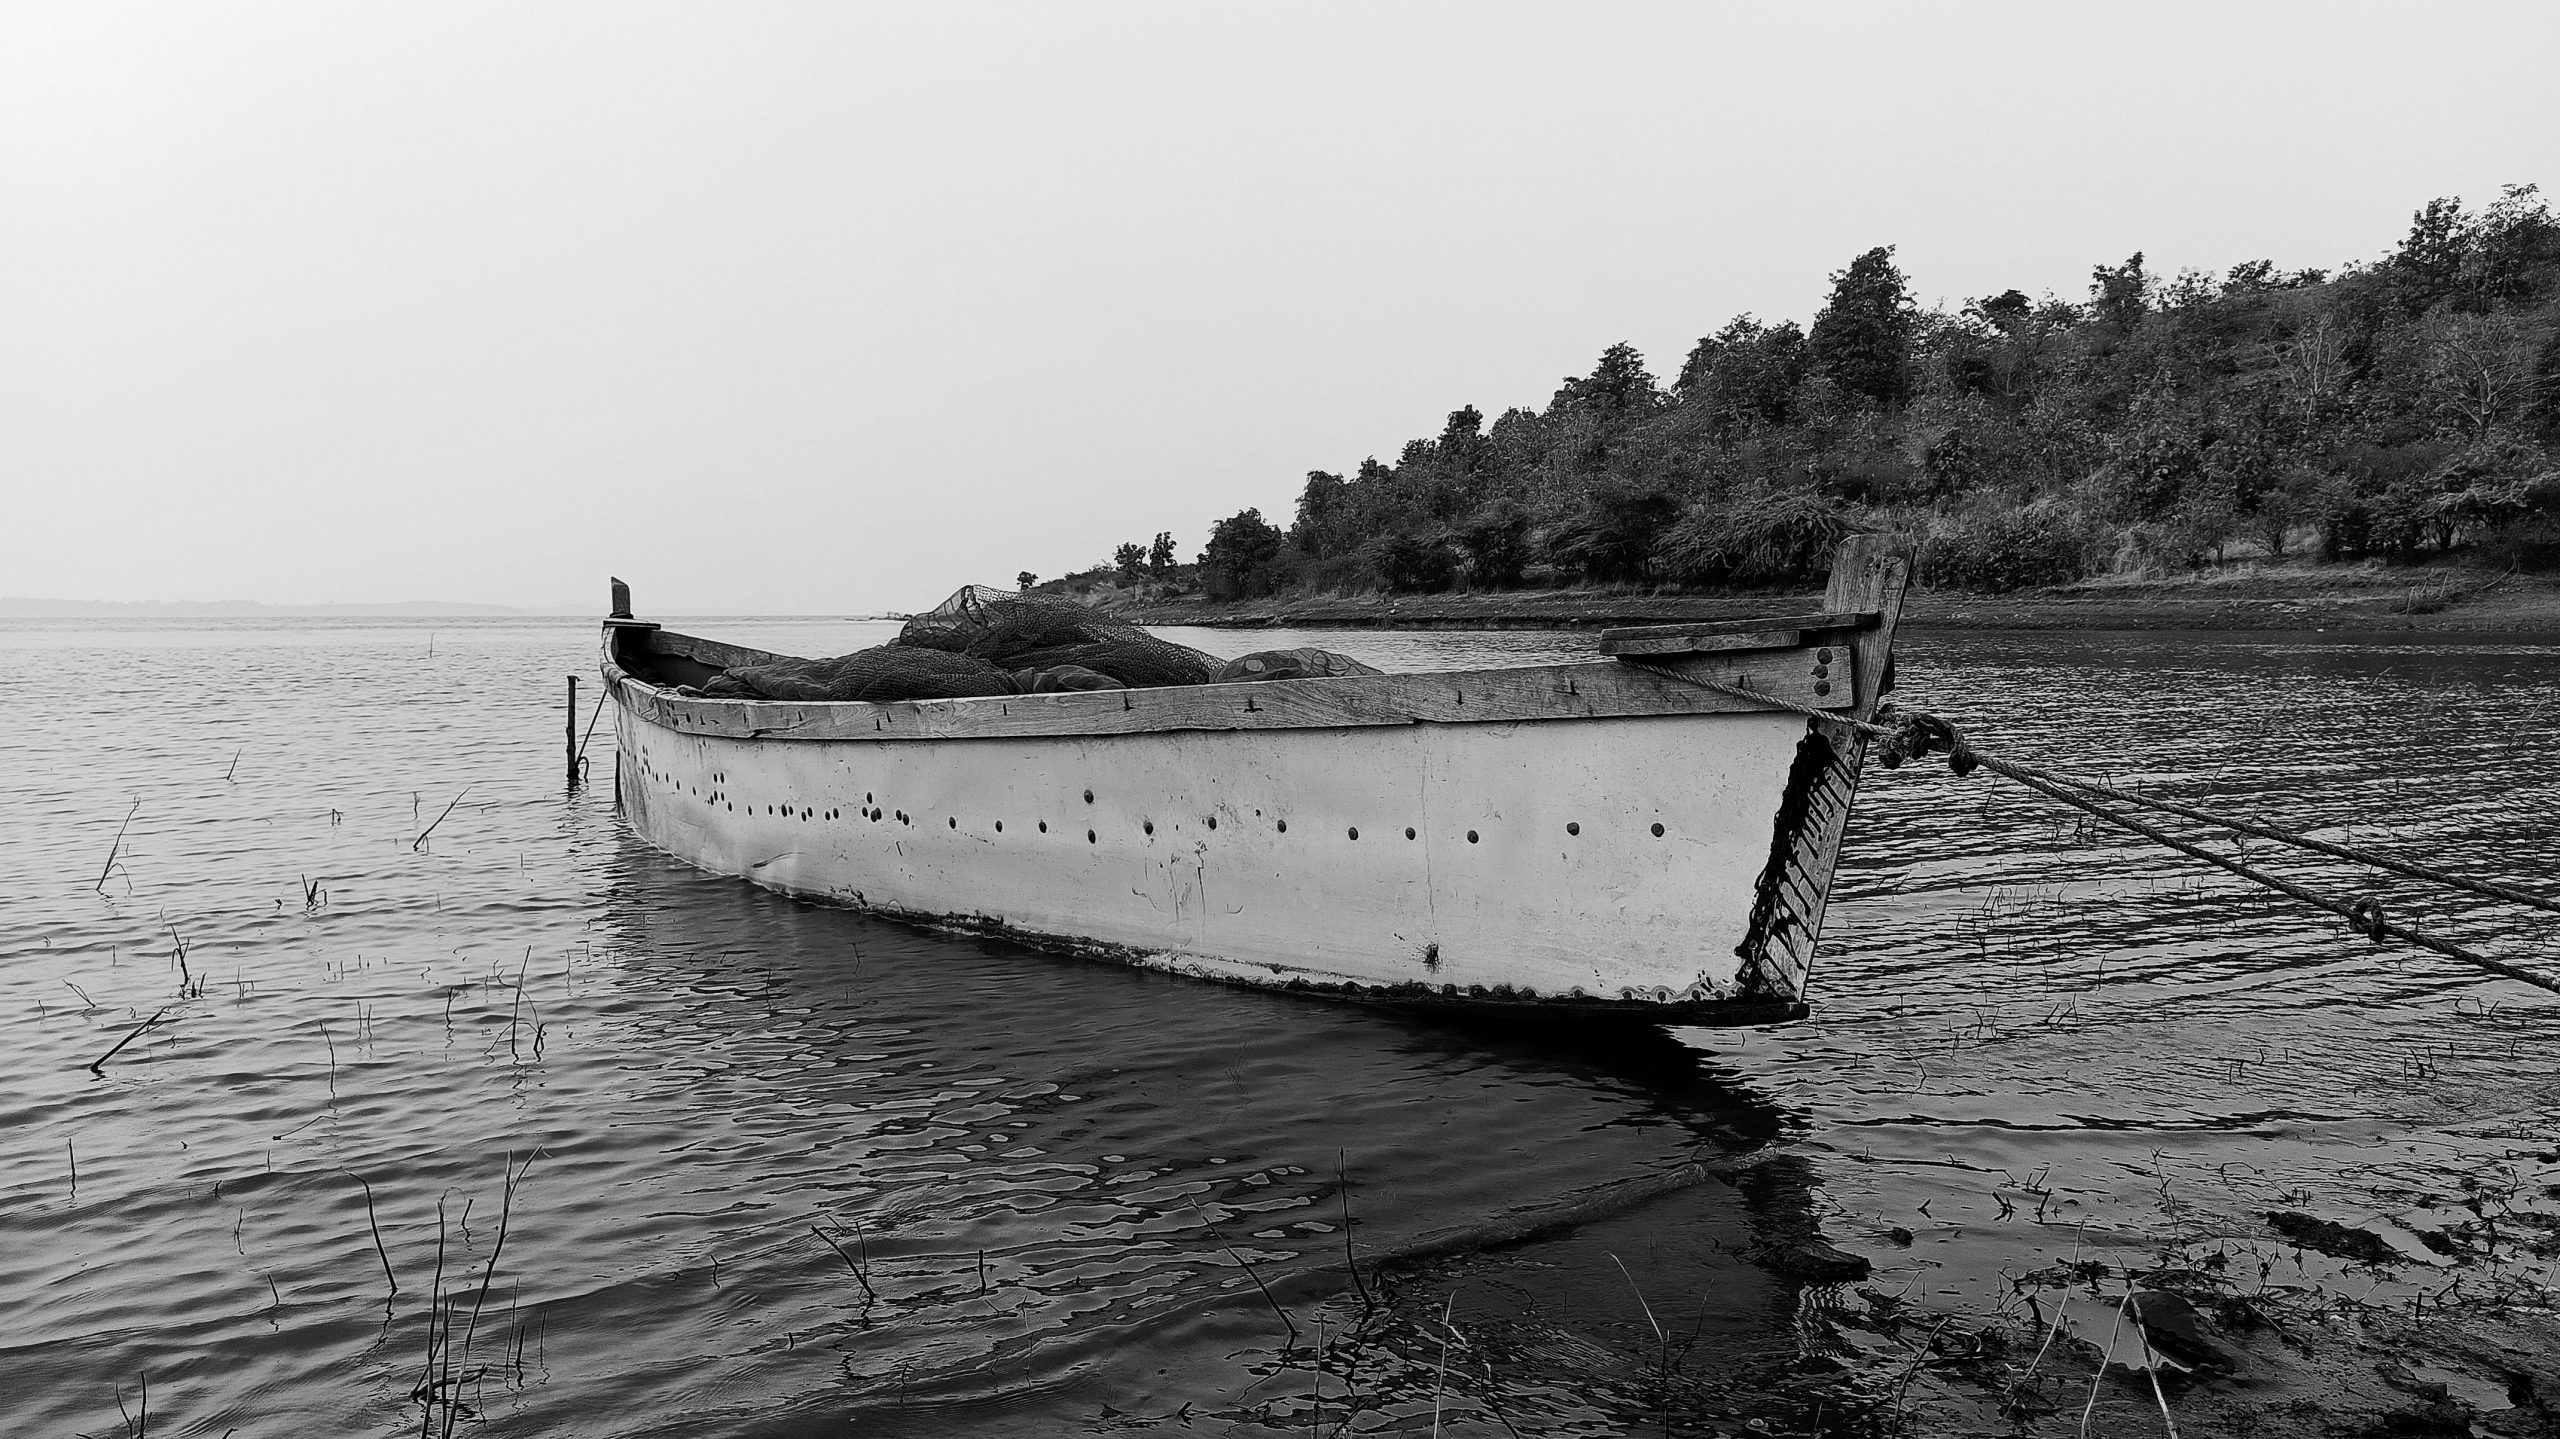 A fishing boat tied to shore